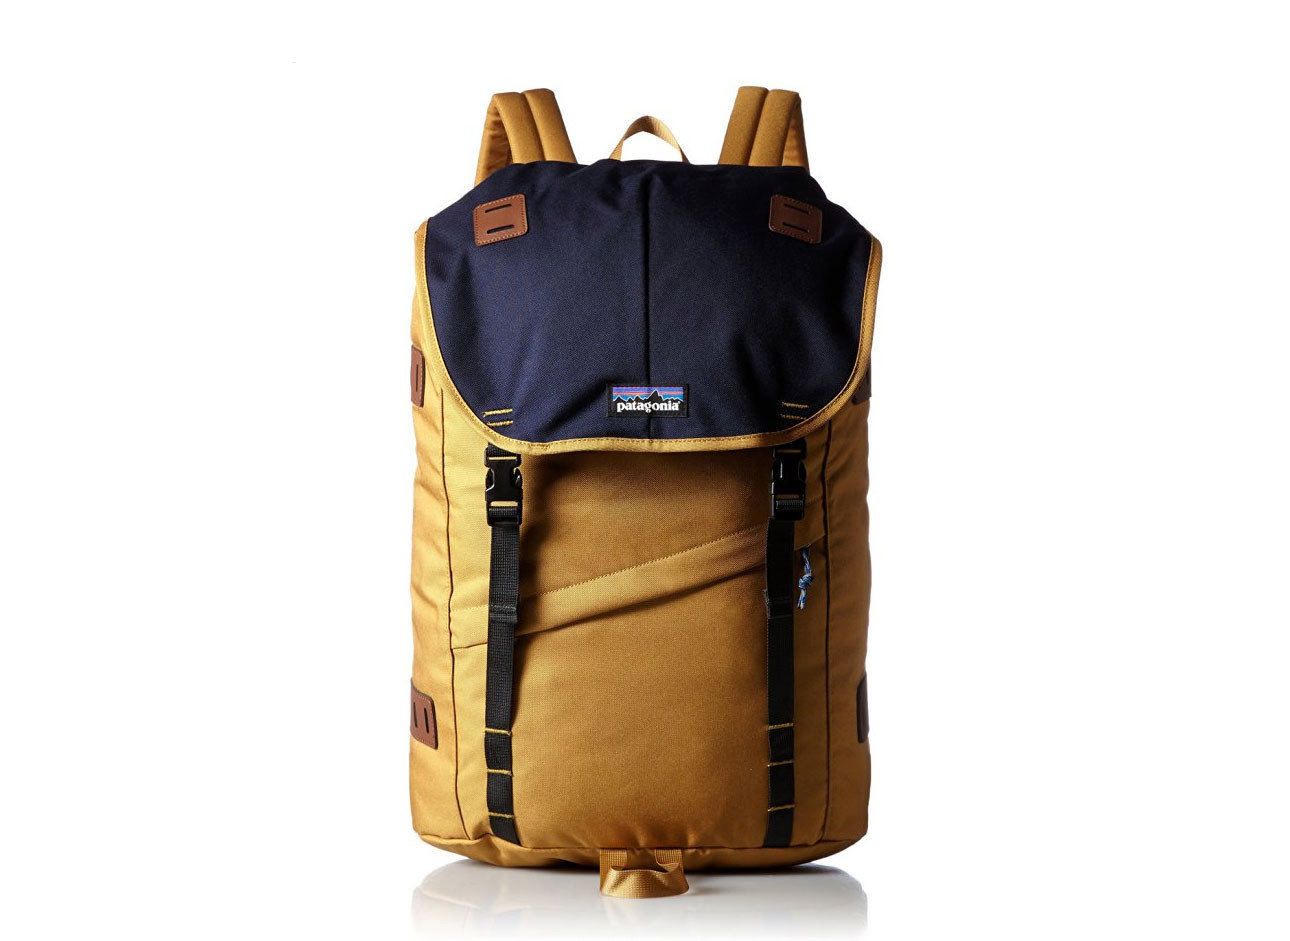 Style + Design luggage suitcase bag brown backpack hand luggage piece product suit brand accessory stack